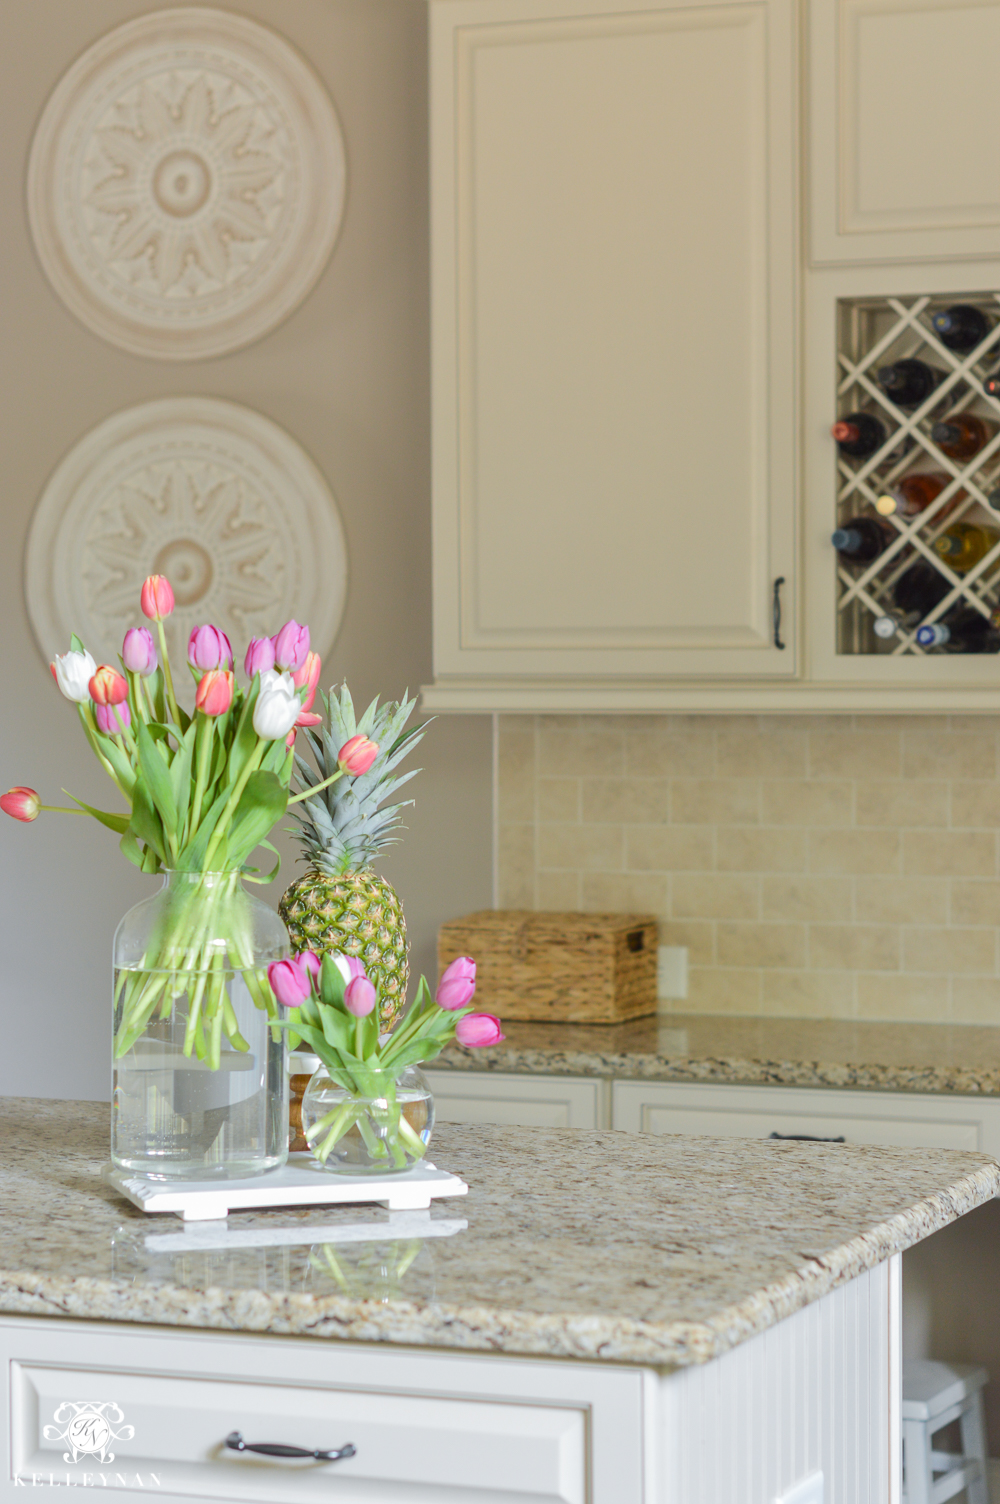 Shades of Summer Home Tour with Neutrals and Naturals- tulips and pineapple on kitchen island